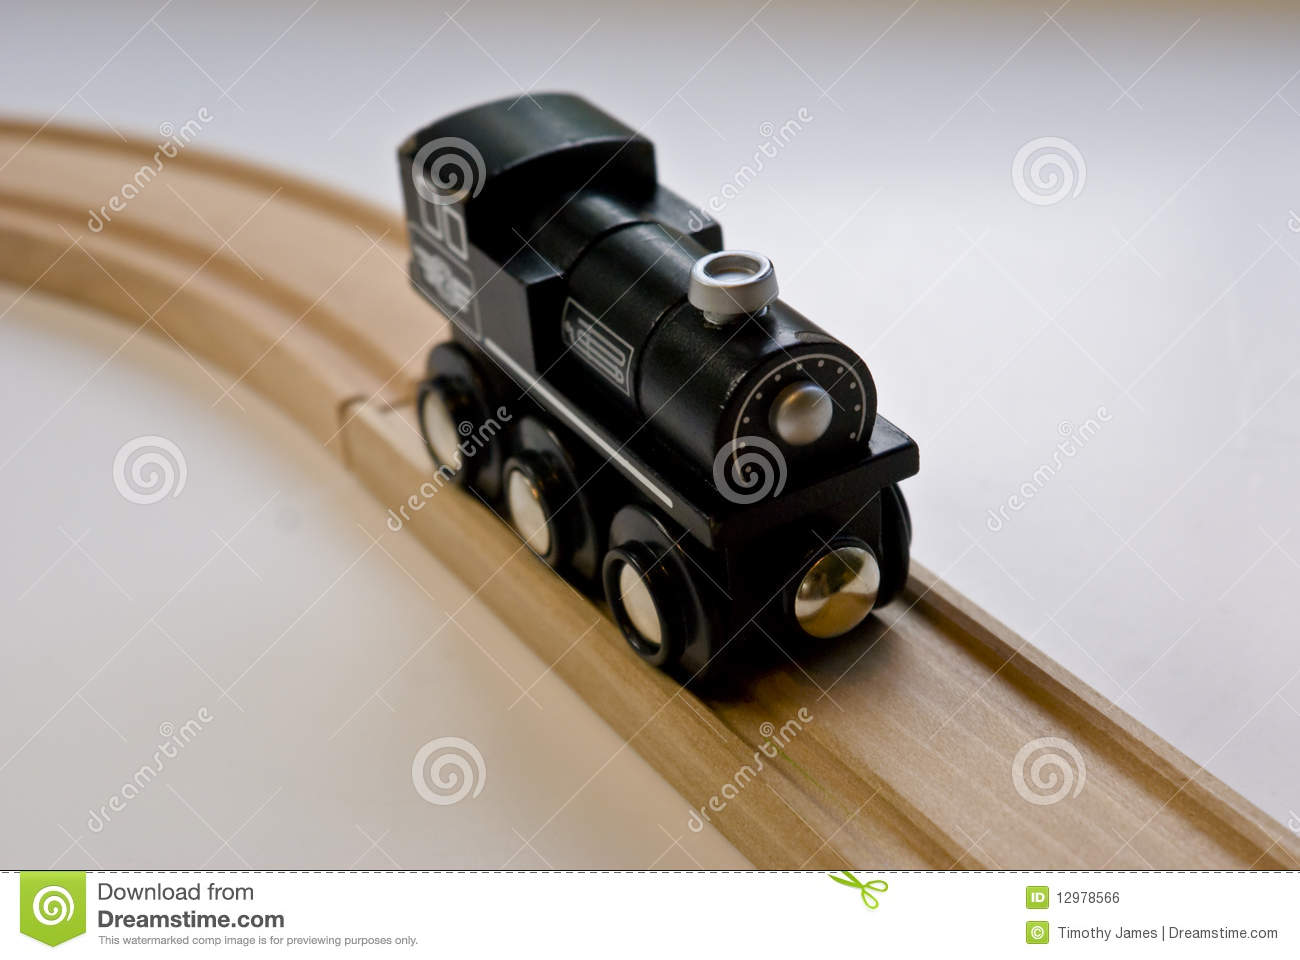 Child's Black Wooden Toy Train On Wood Tracks Royalty Free Stock Image ...